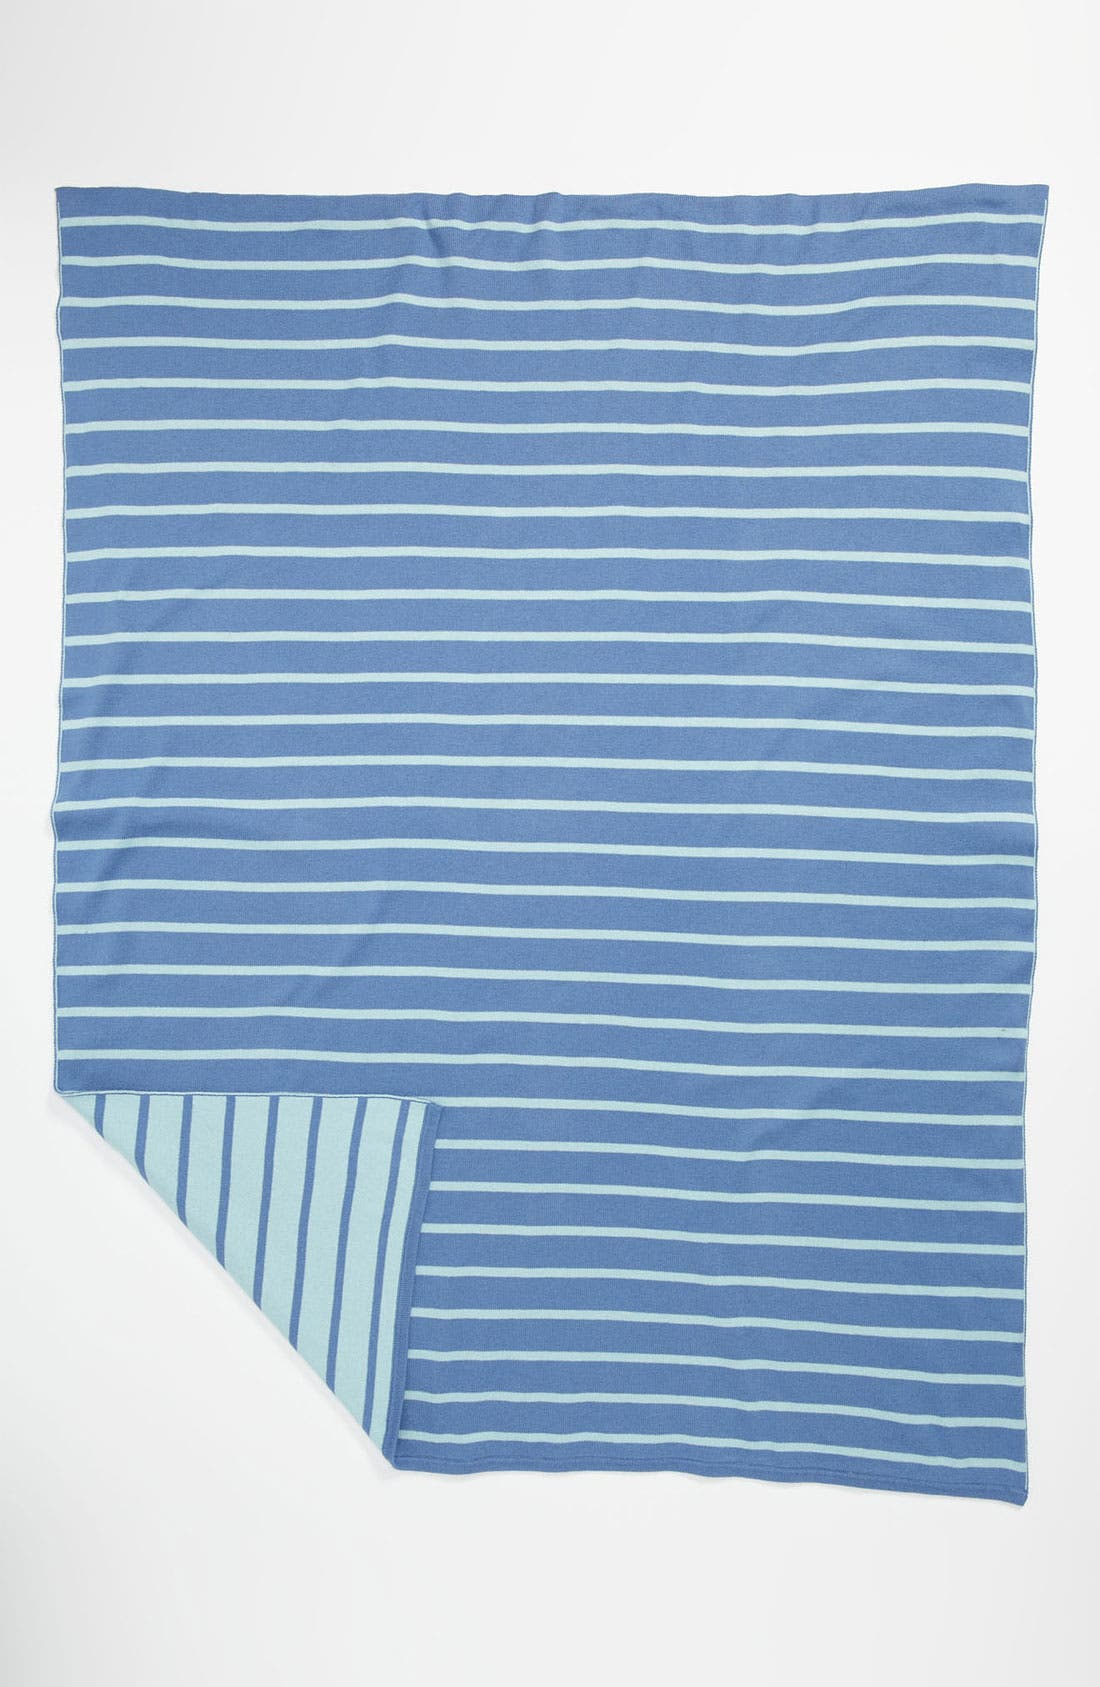 Alternate Image 1 Selected - Stem Baby 'Bright Stripe' Organic Cotton Blanket